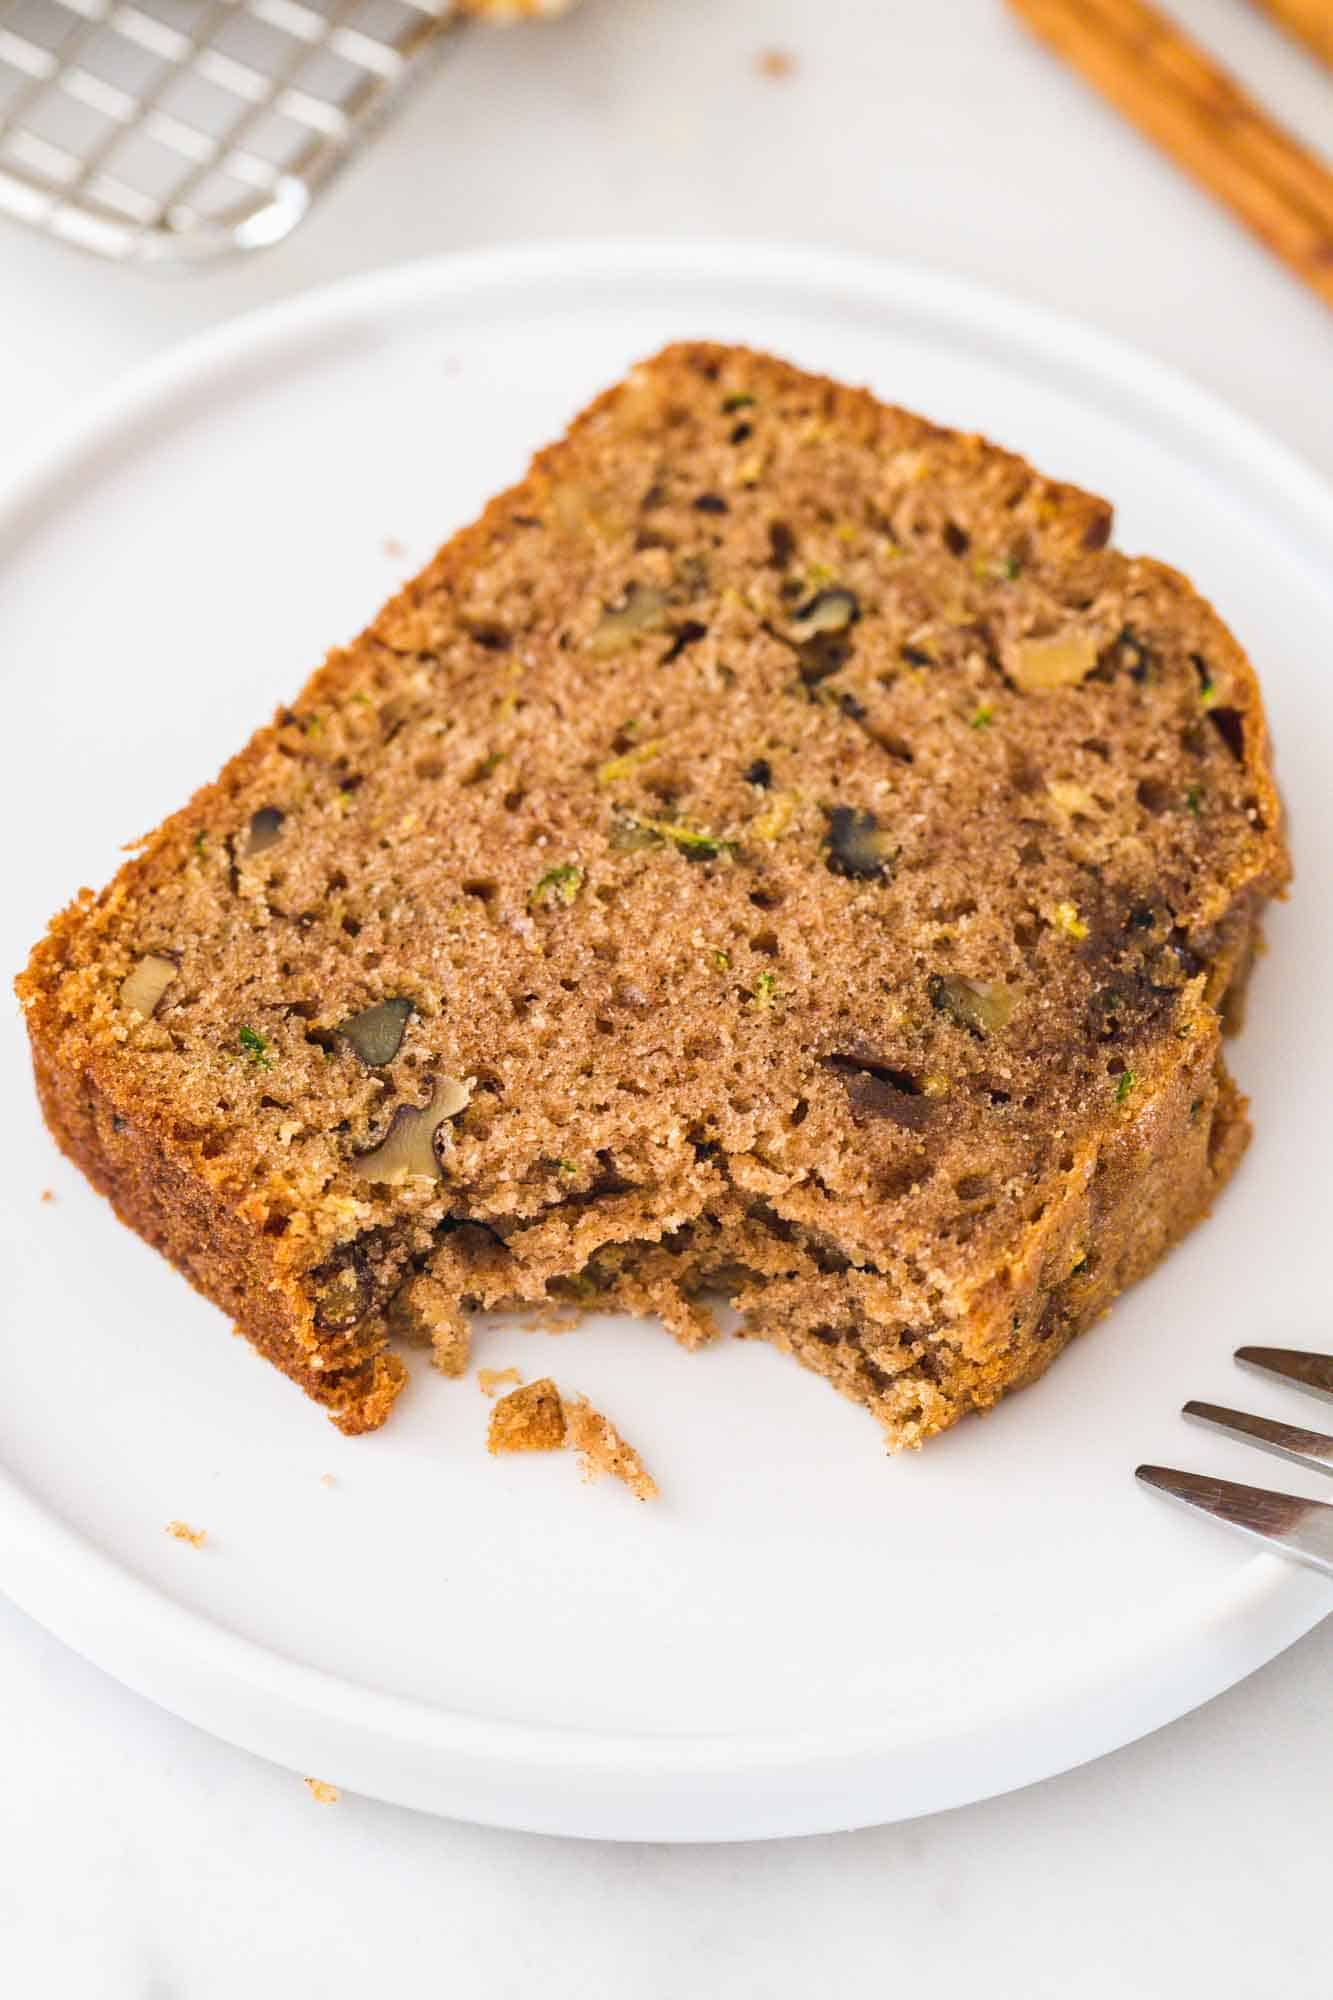 A slice of zucchini bread served on a white plate